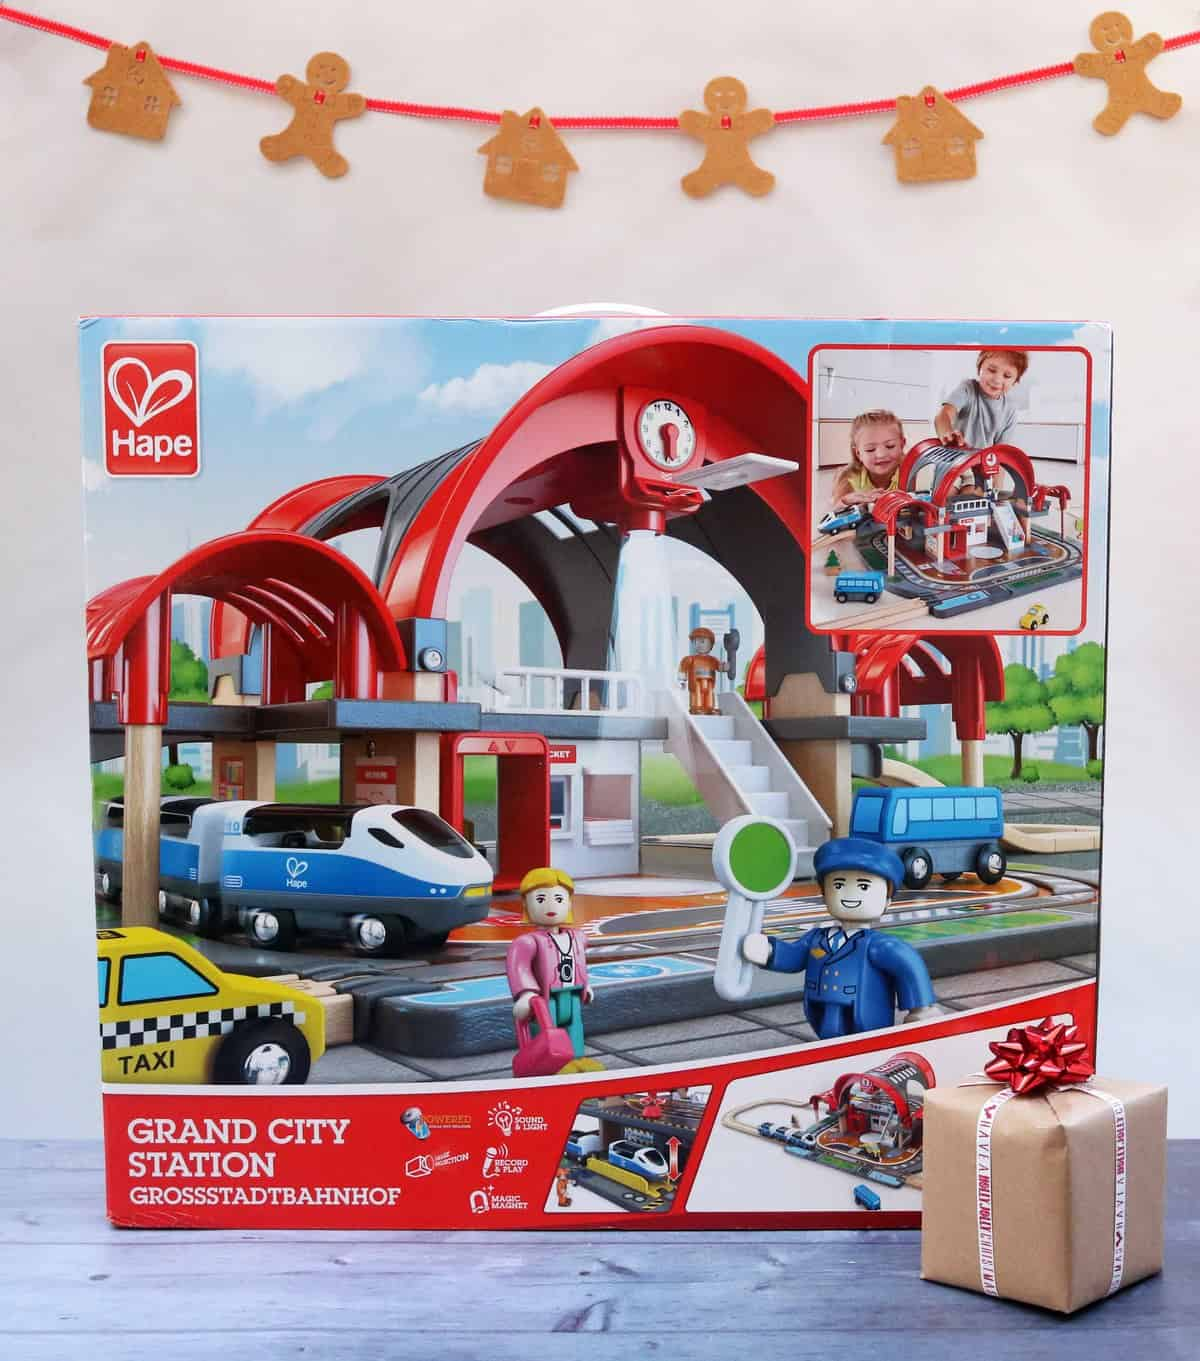 Grand City Station train set from Hape